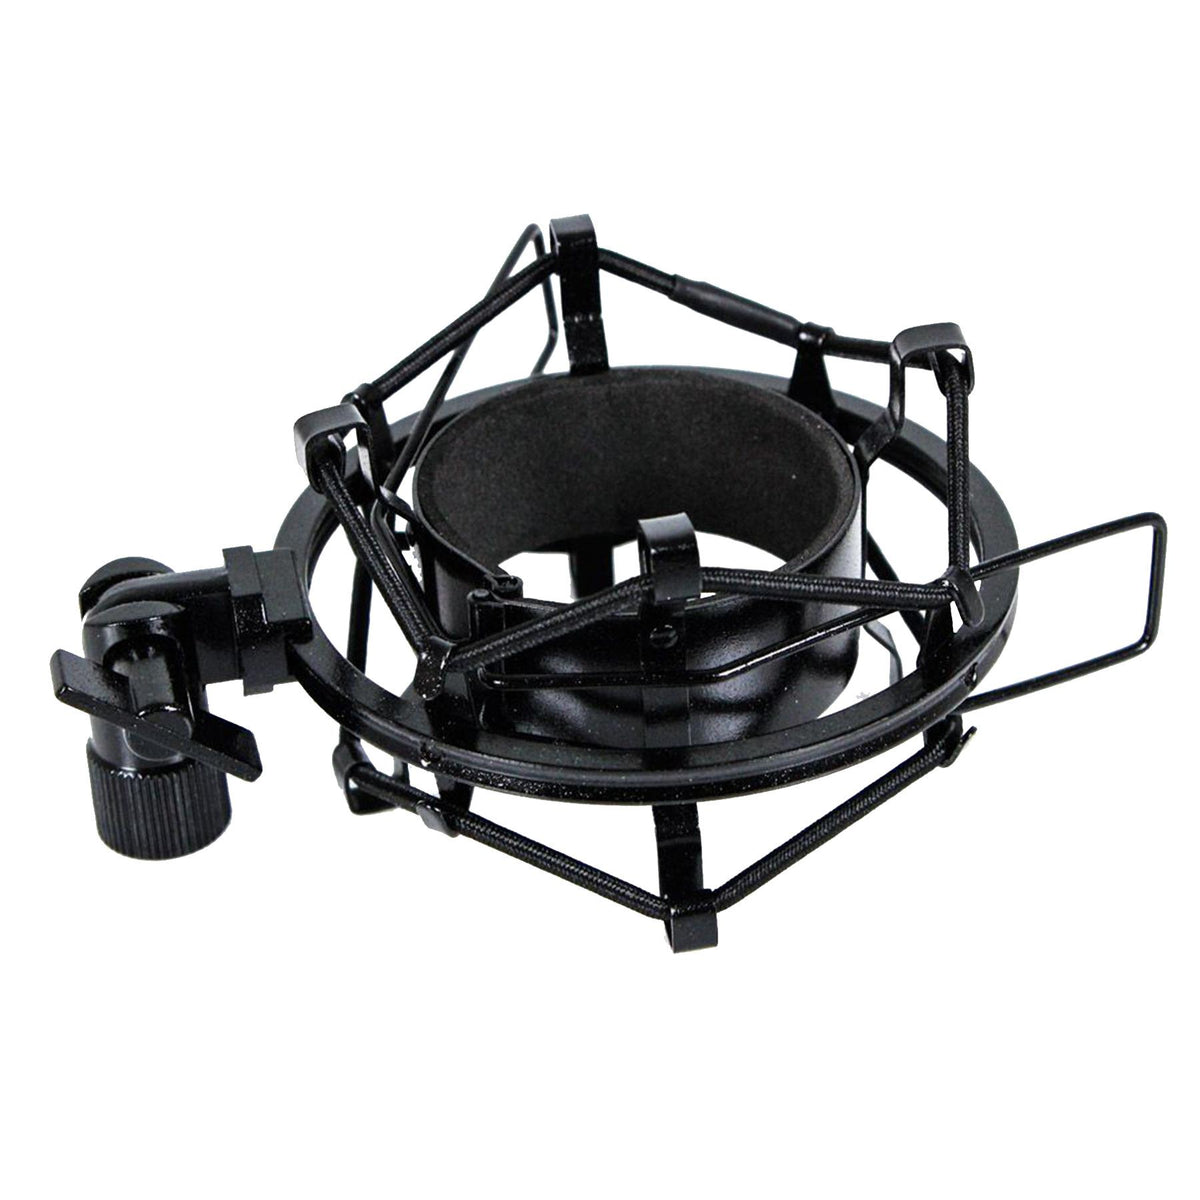 MXL 70 Shock Mount - Black